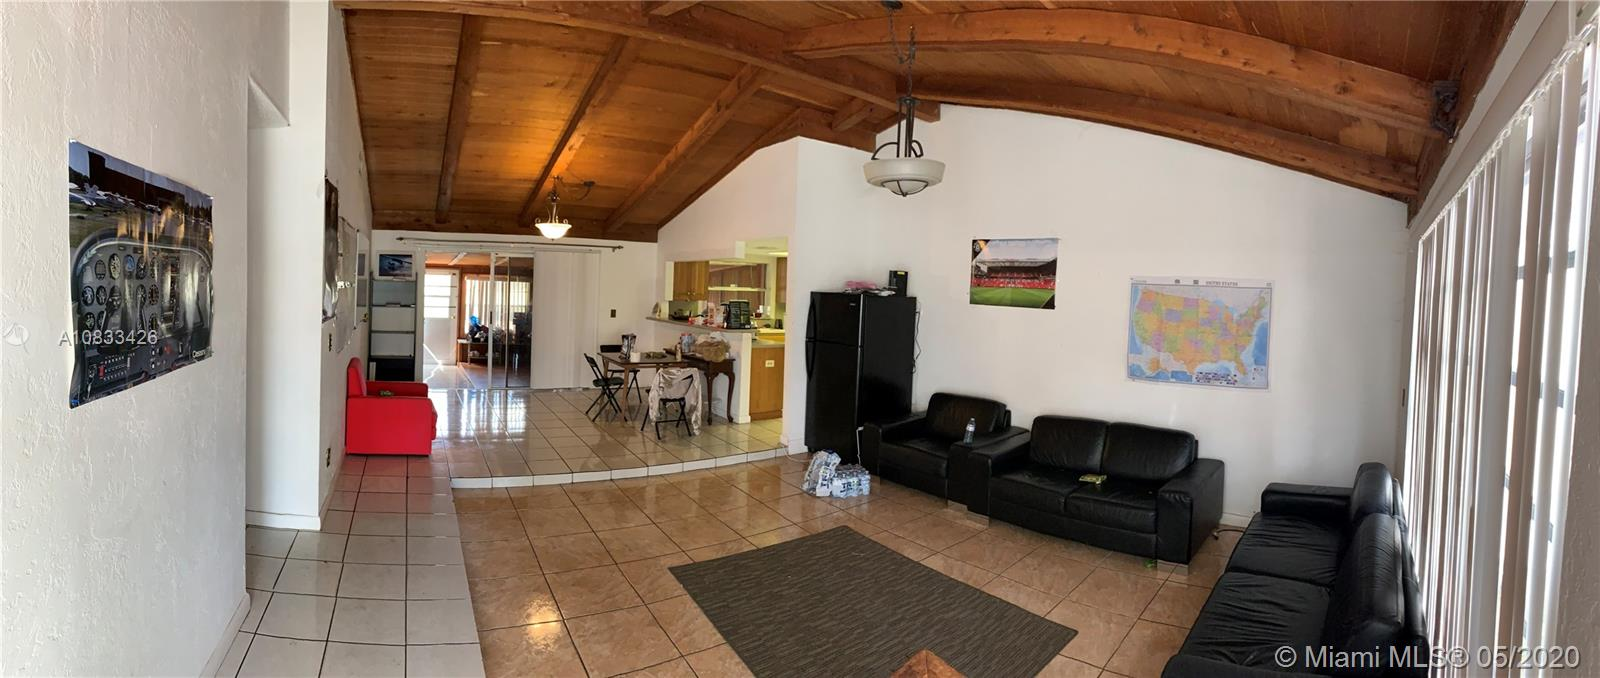 2700  Cypress Ct  For Sale A10833426, FL